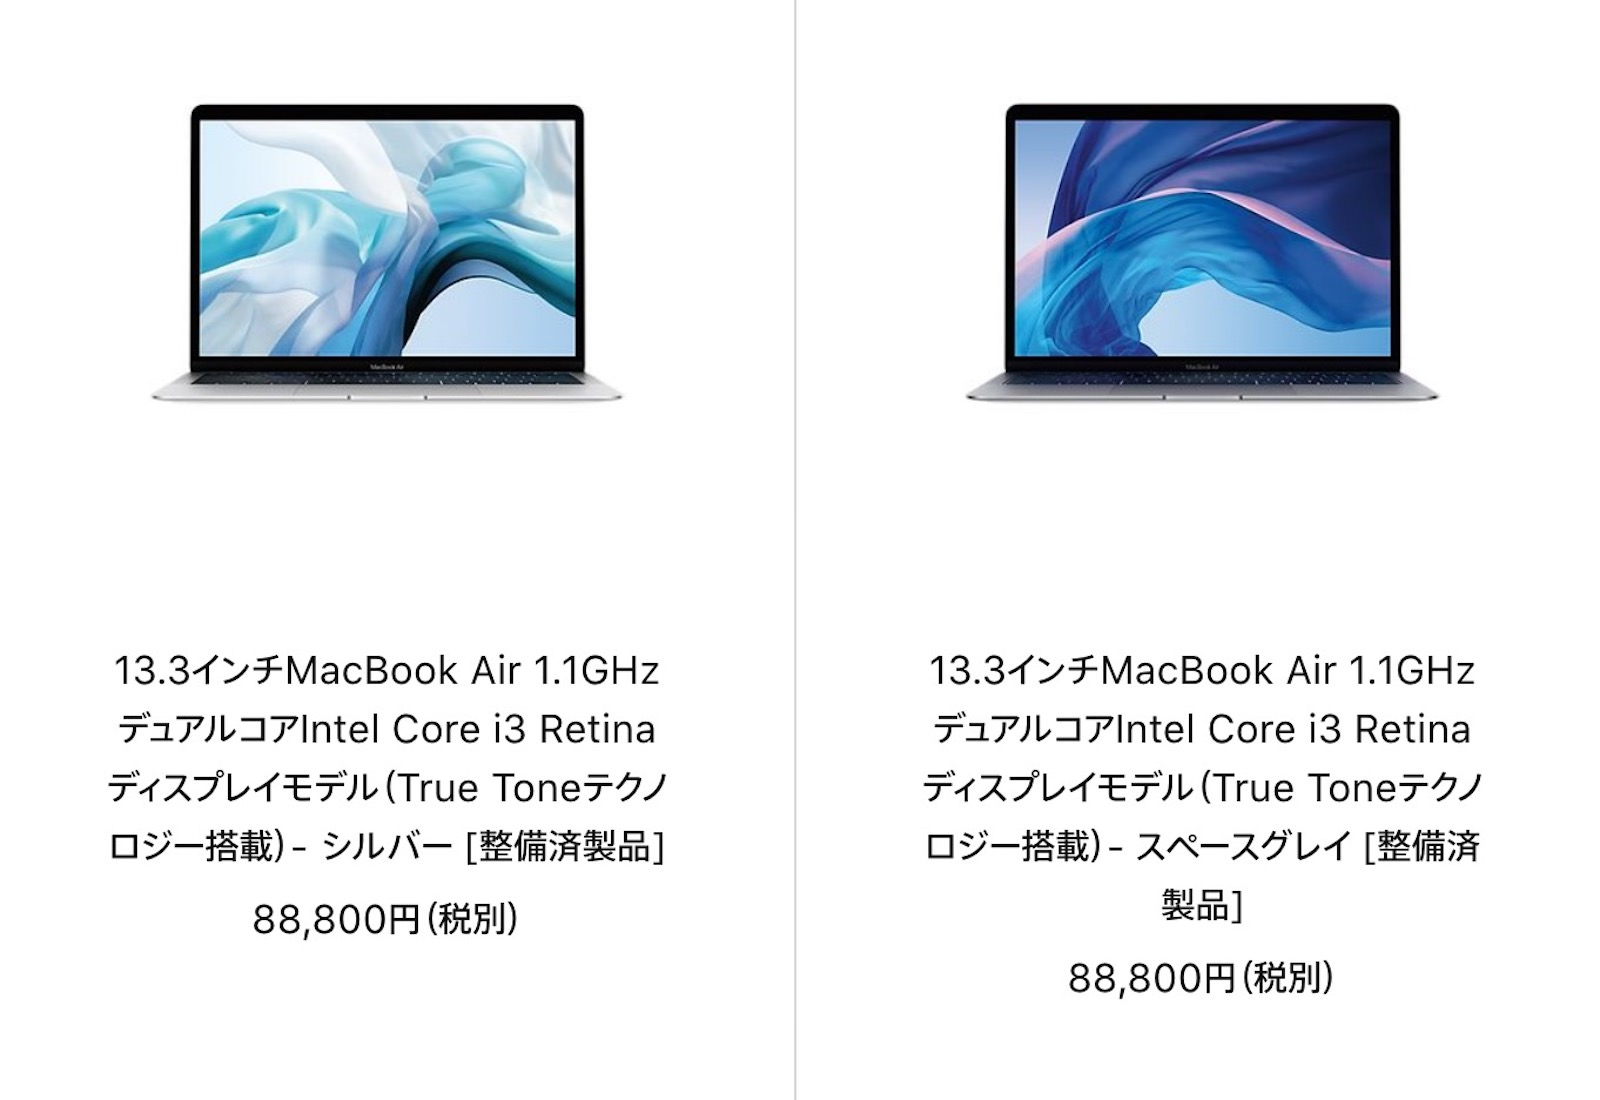 Macbook air 2020 on sale